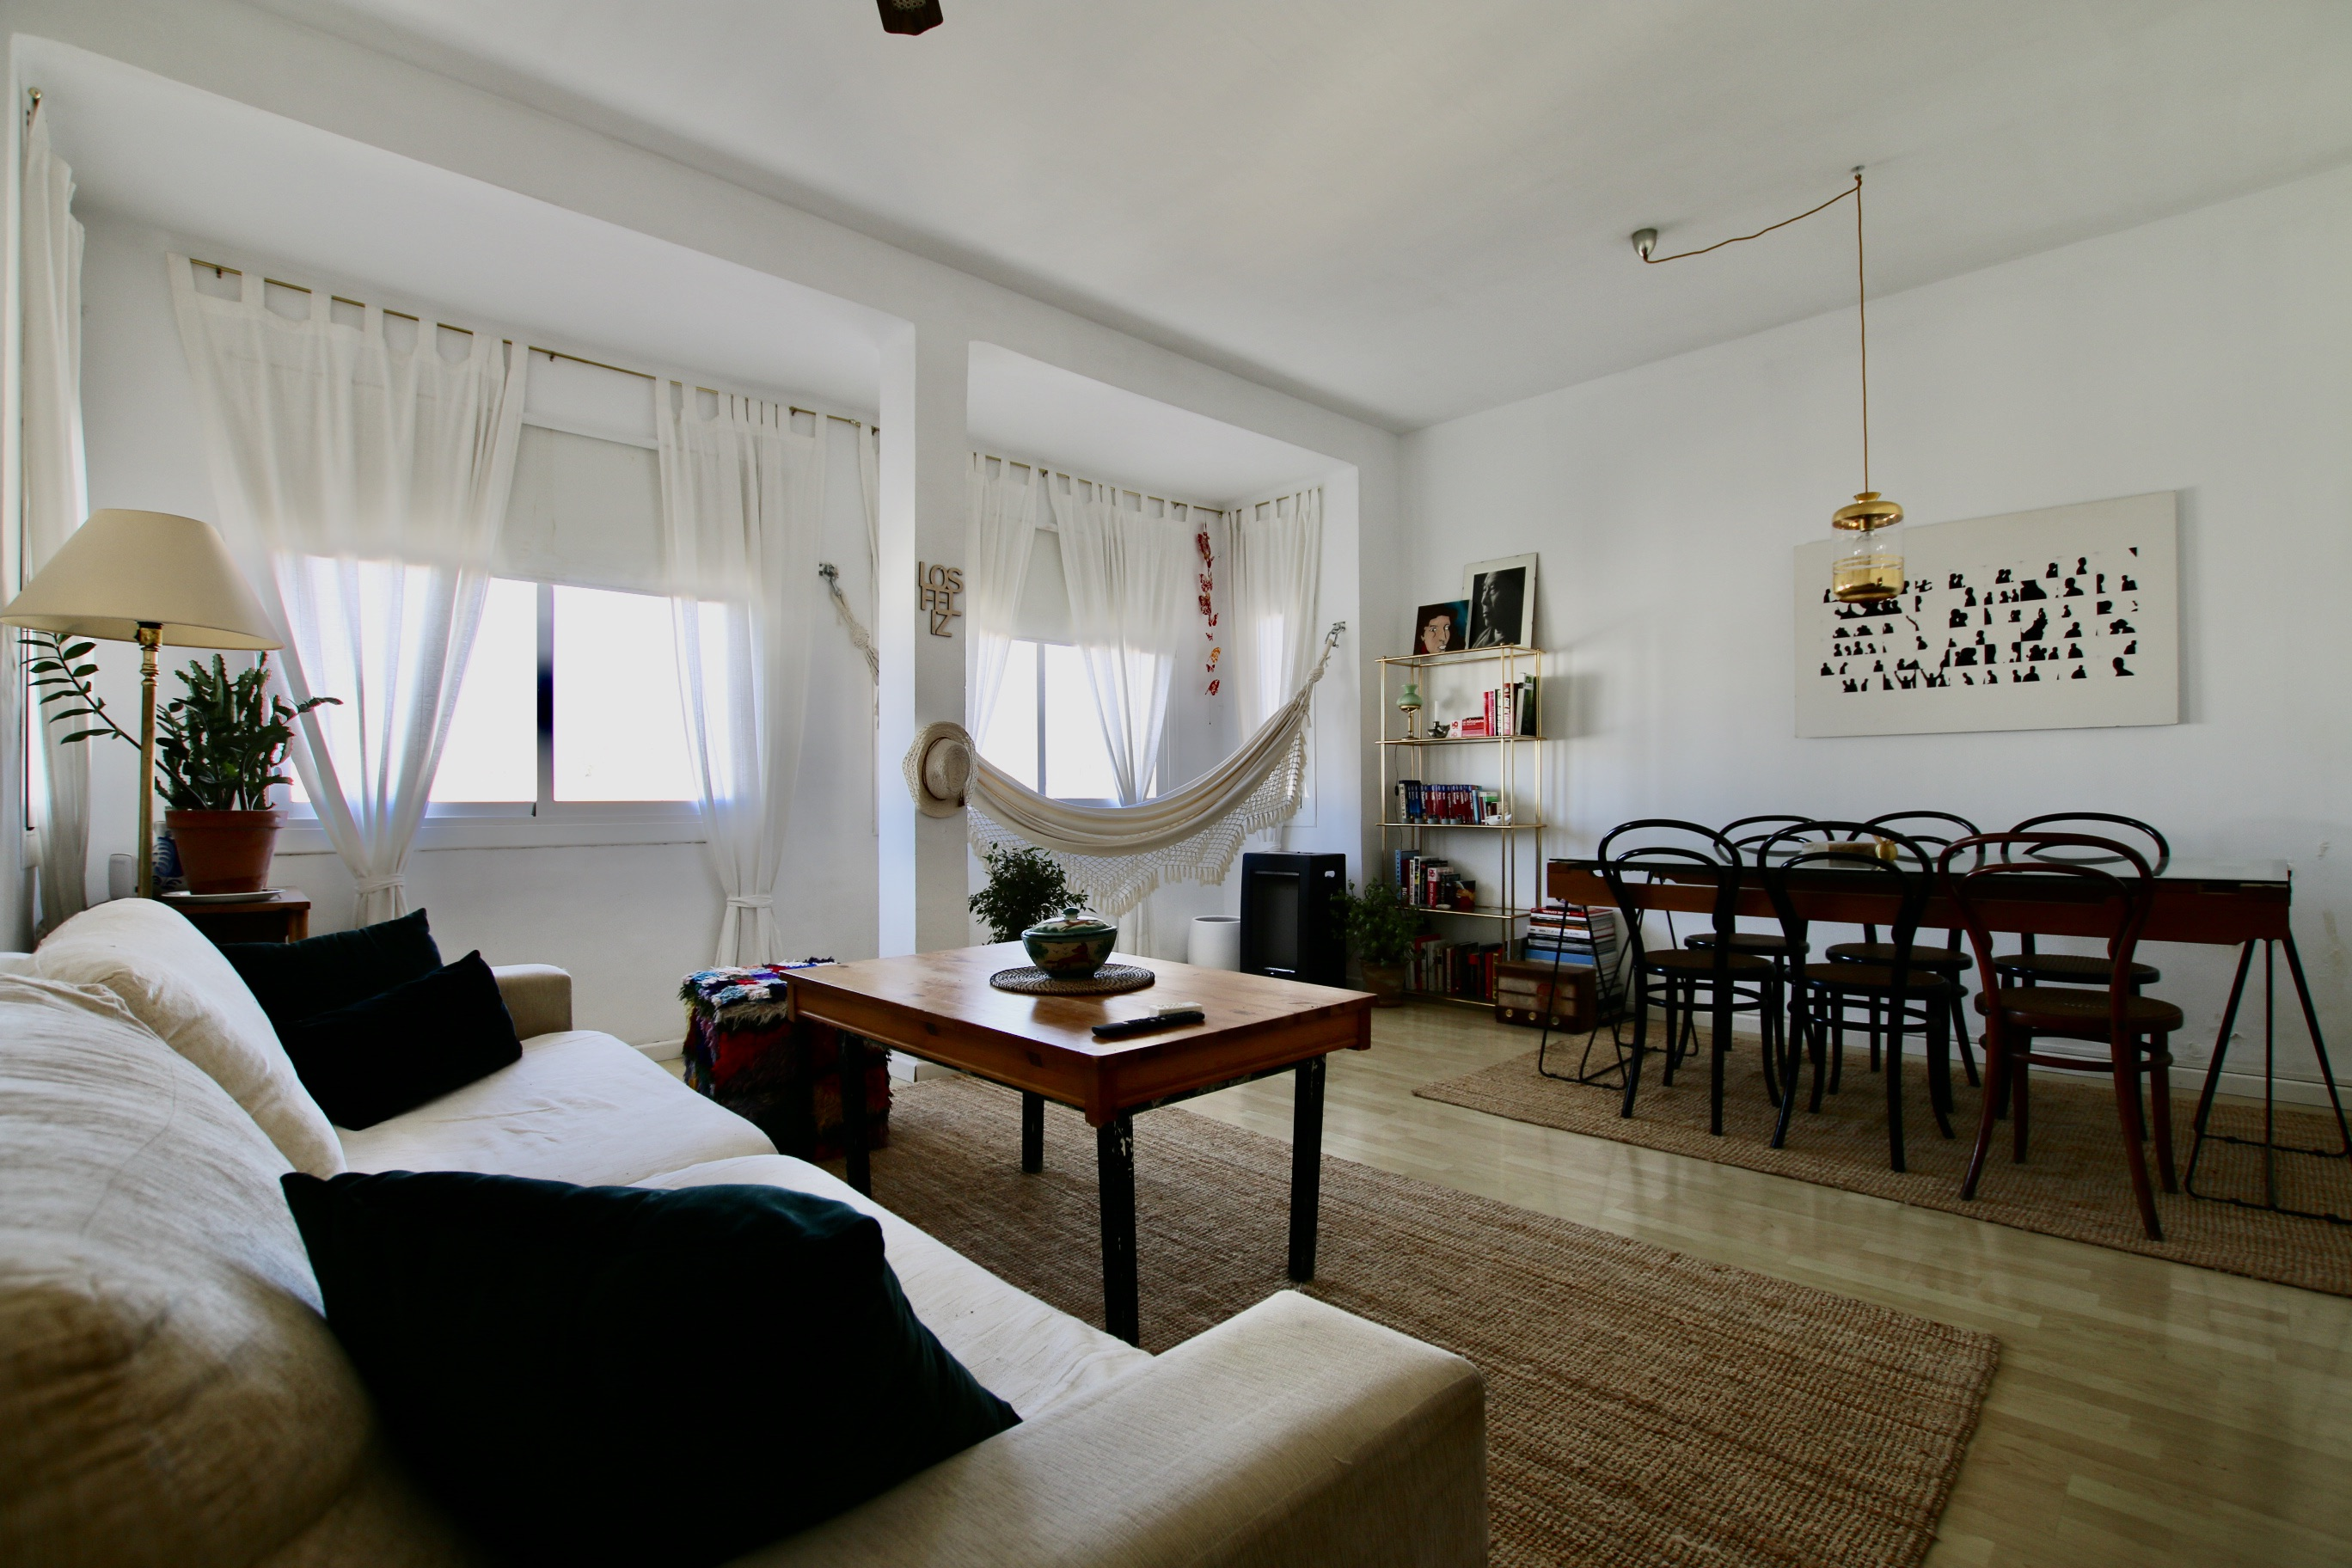 Charming 3 bedroom apartment in the heart of Son Armadams @ Palma de Mallorca